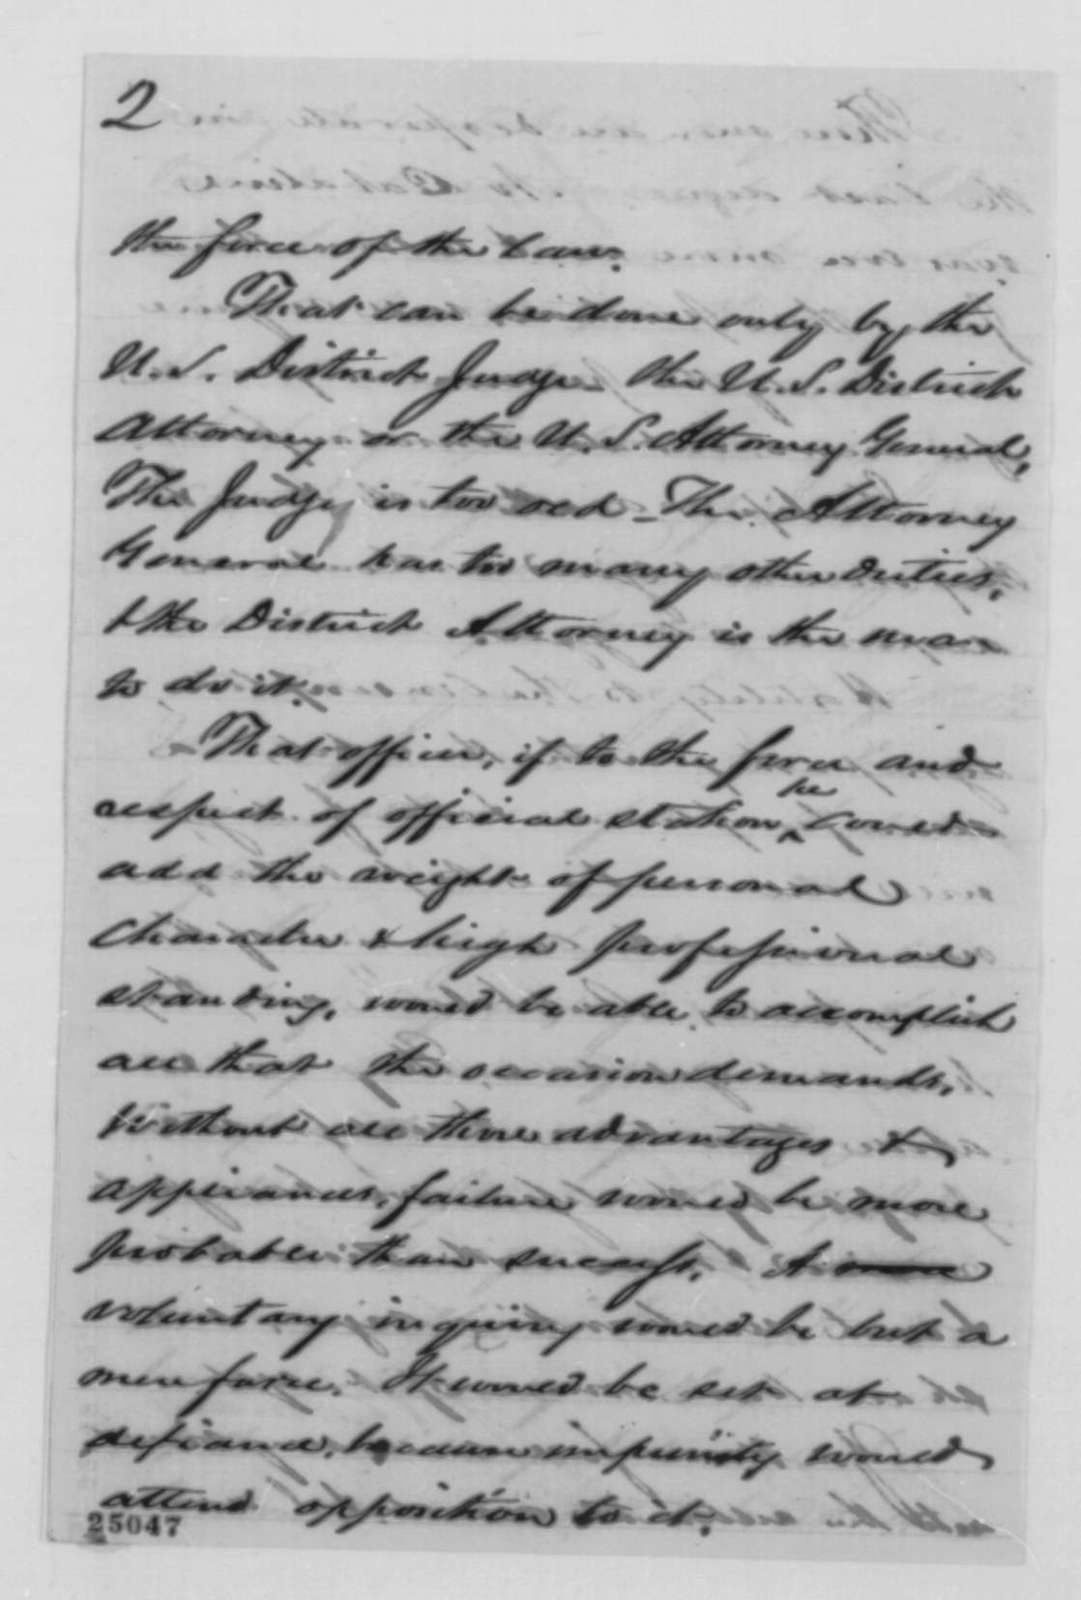 John W. Edmonds to James R. Gilmore, Tuesday, July 21, 1863  (New York draft riot)